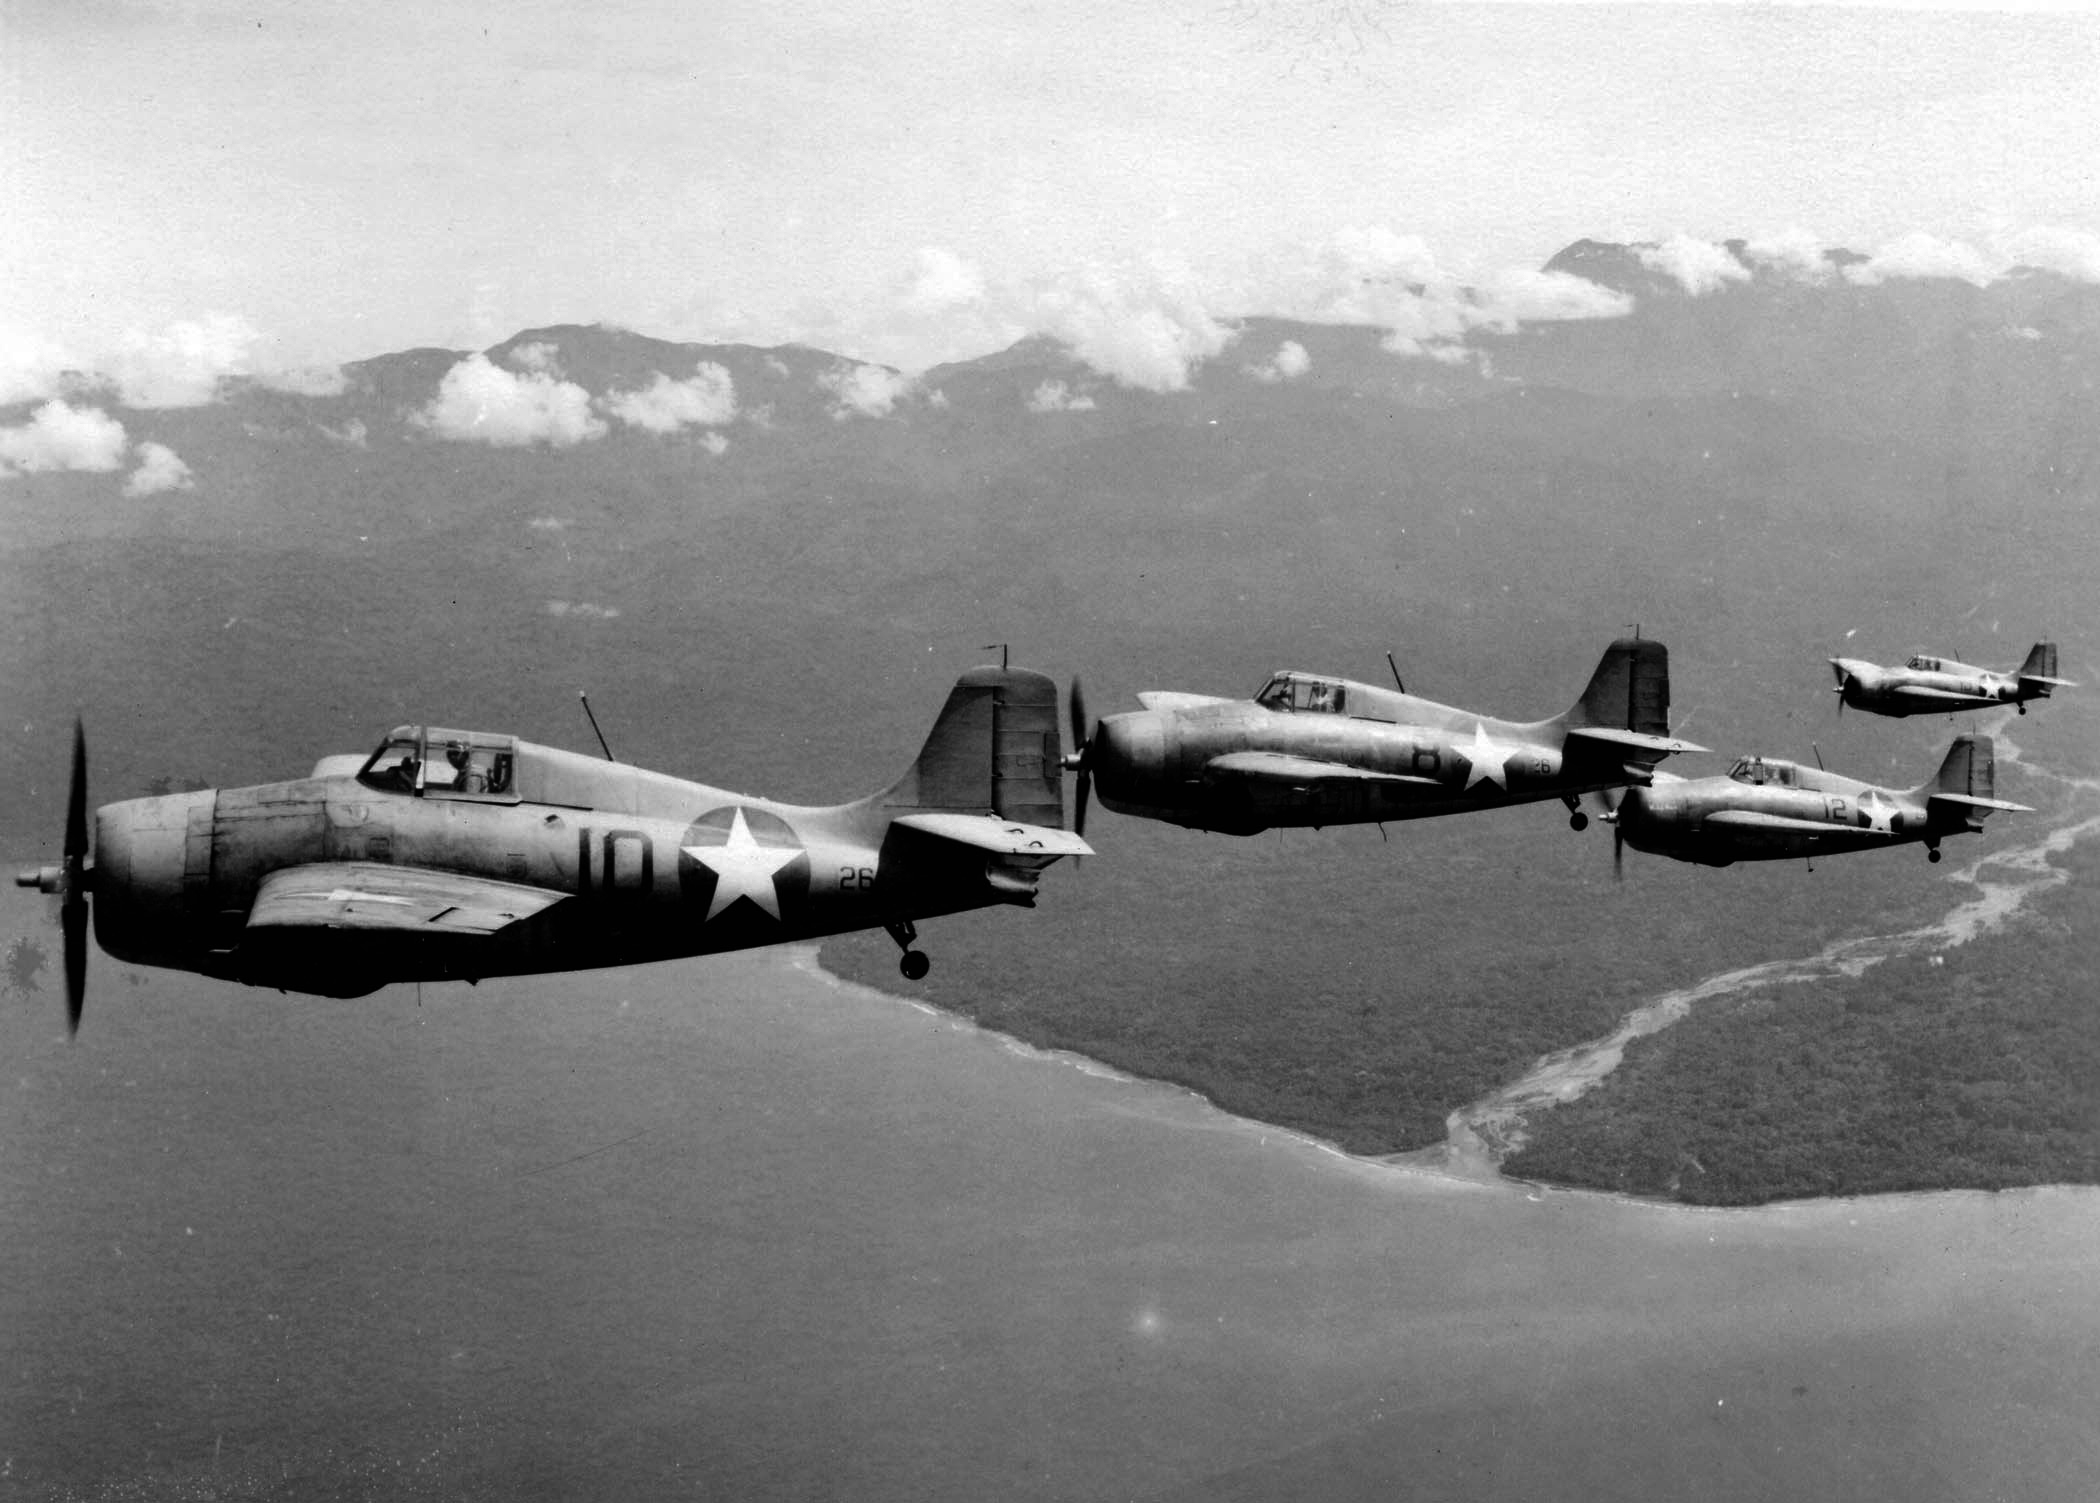 Grumman F4F 3 Wildcat VGF 26 Black 1026, 826, 1226 and 1326 Southern Solomon Islands c 1942 01